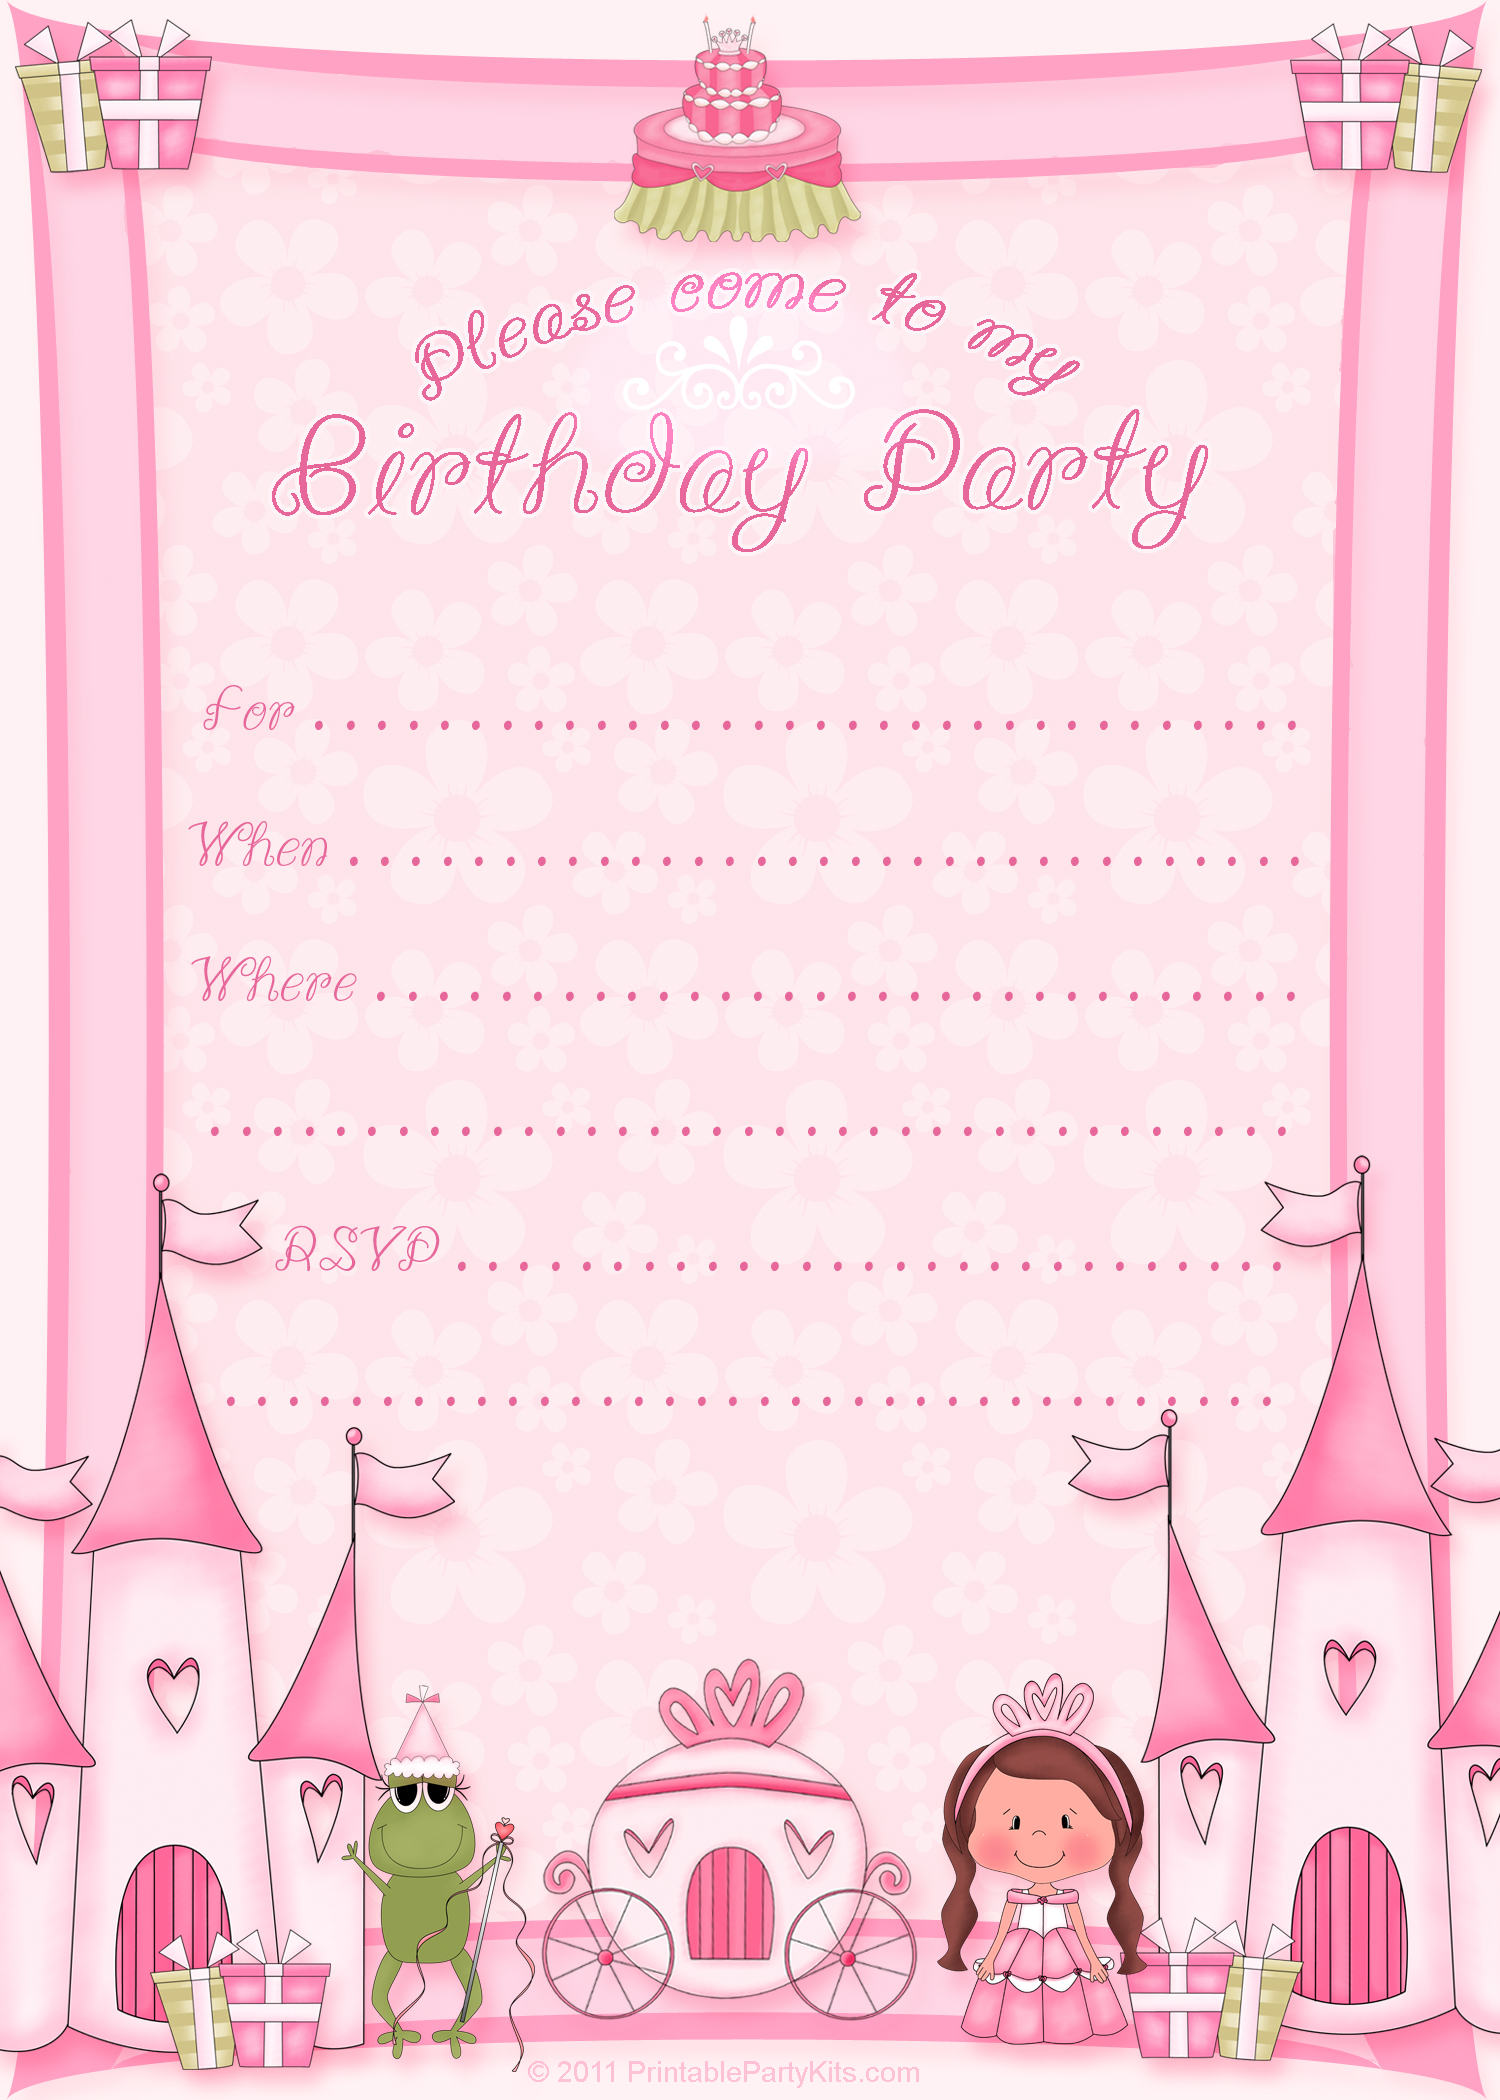 birthday invitation card design template free download ; birthday-invitation-templates-free-download-and-get-inspiration-to-create-the-Birthday-invitation-design-of-your-dreams-1